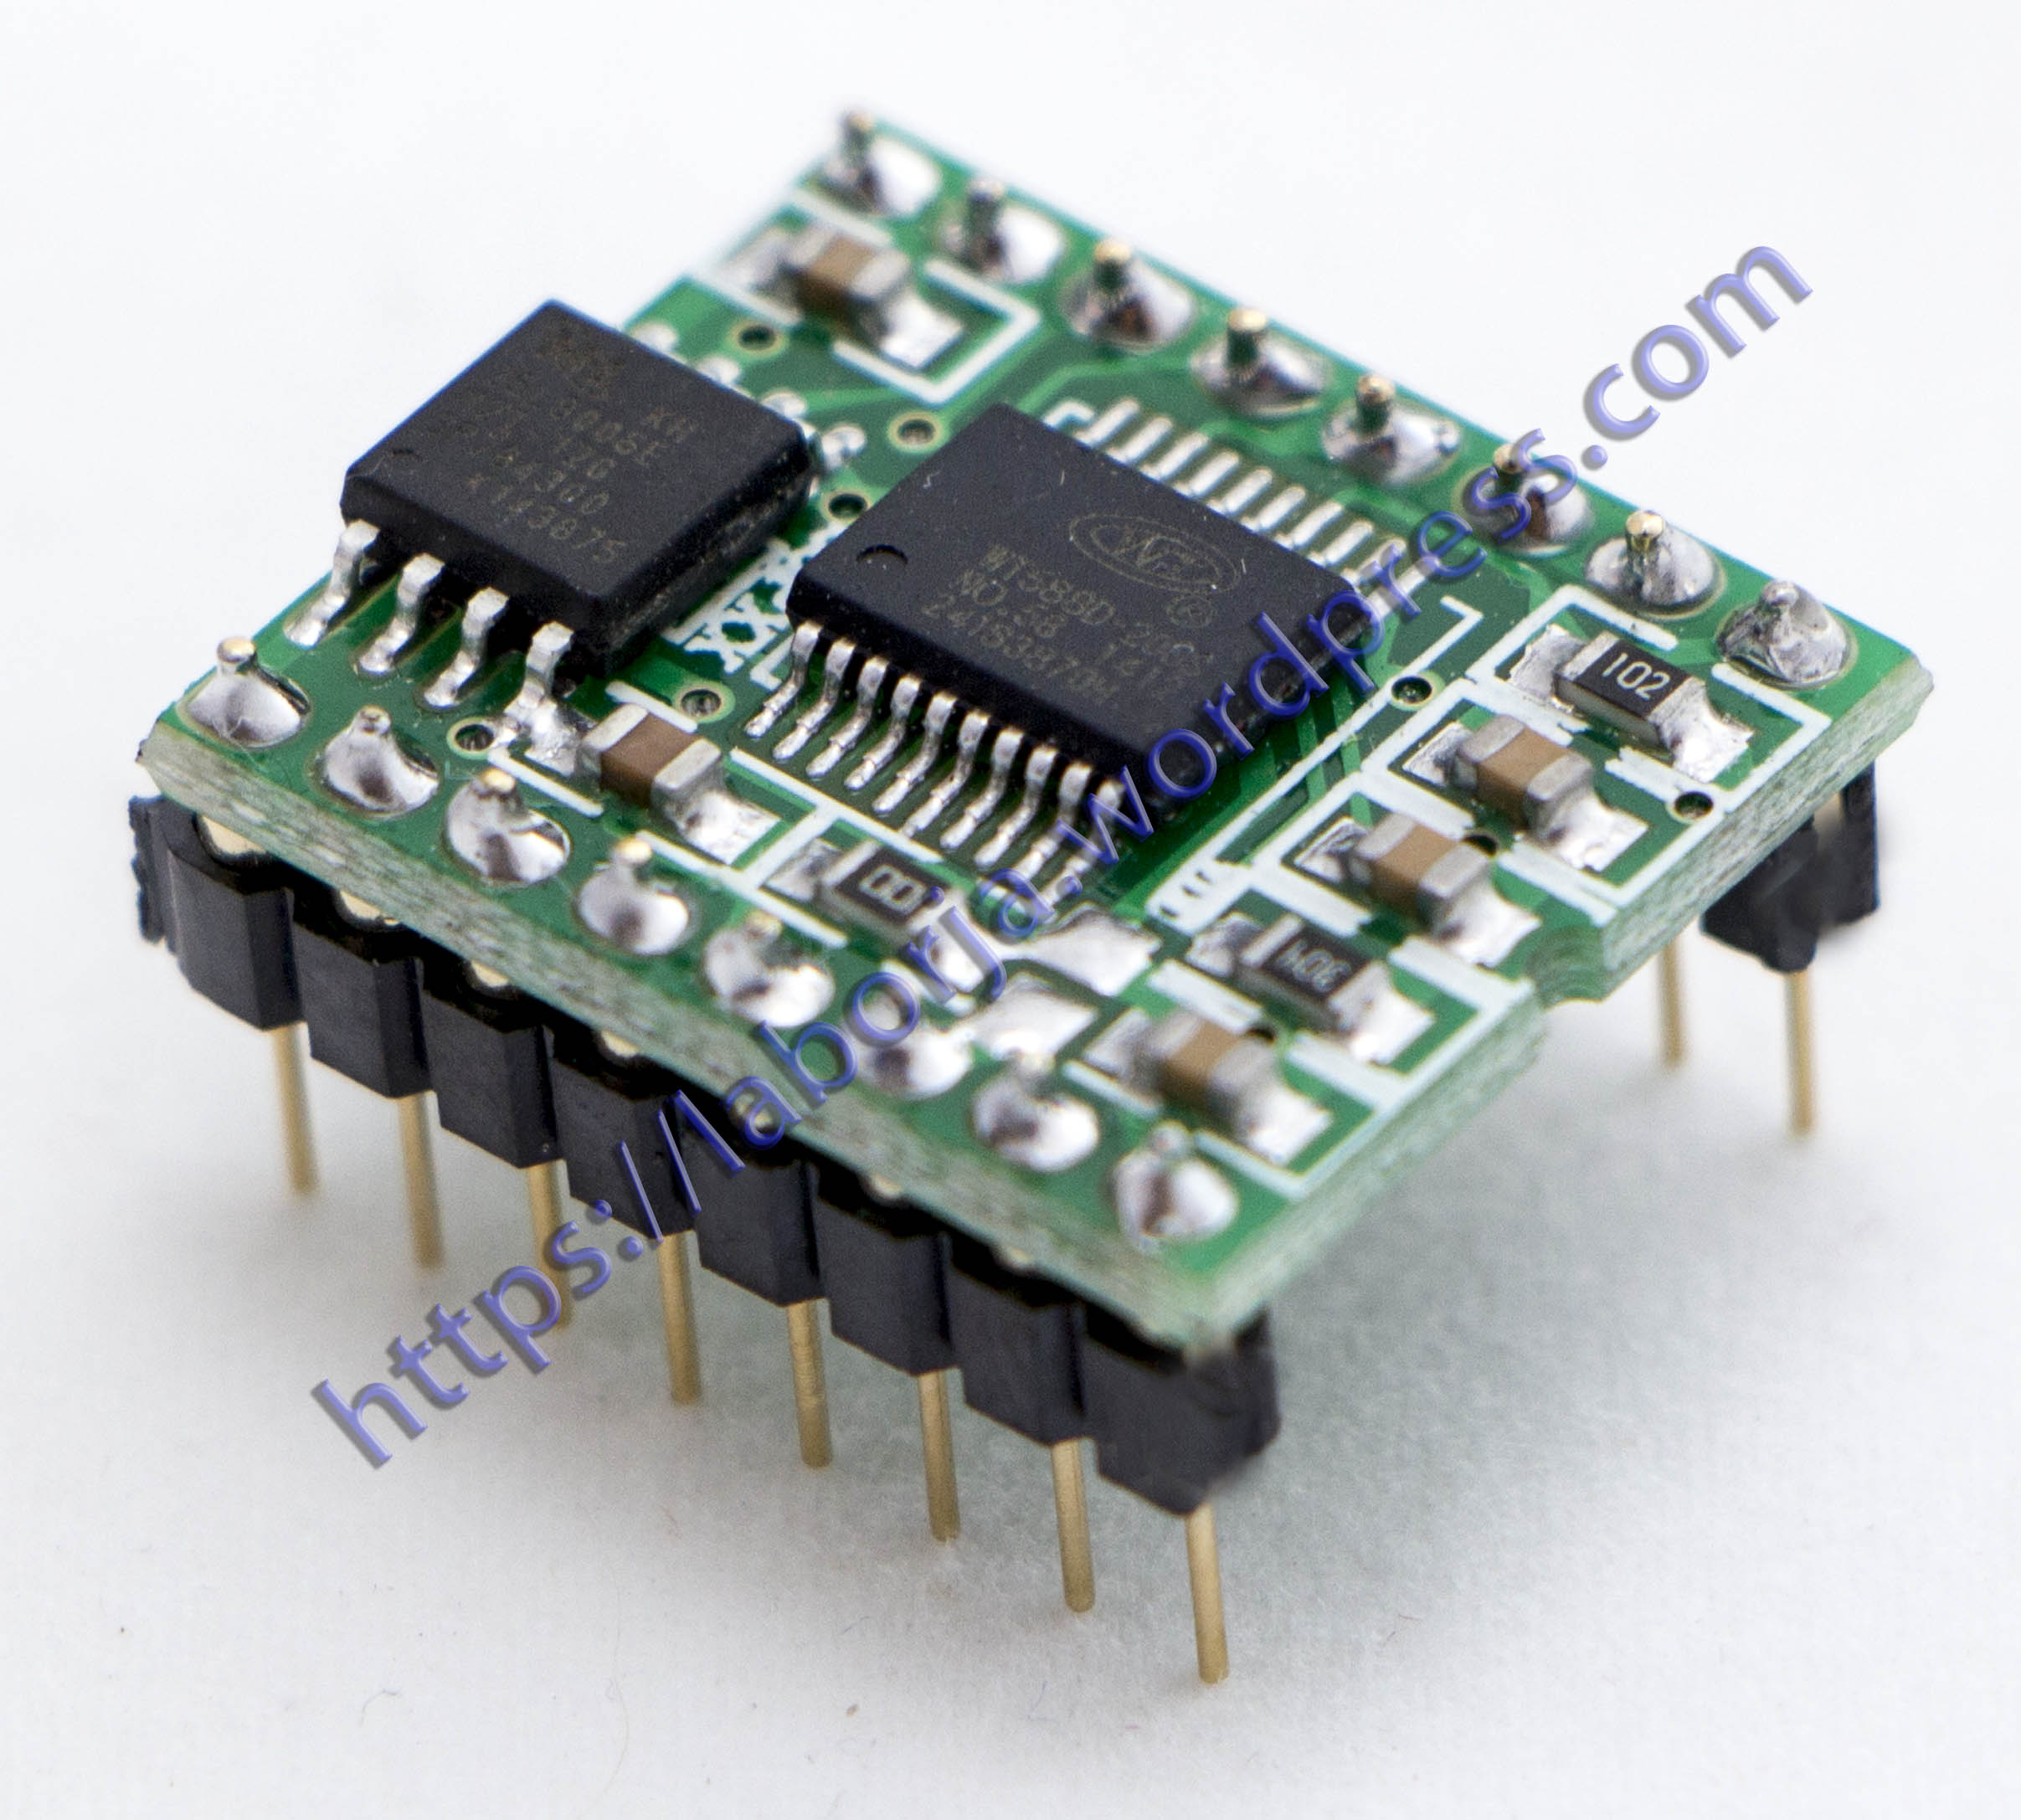 Wt588d 16p 8m Voice Sound Module Borja Home Page Circuit Diy Breadboard 830 Point Board 65pcs Jumper Wire Kit Set Yc